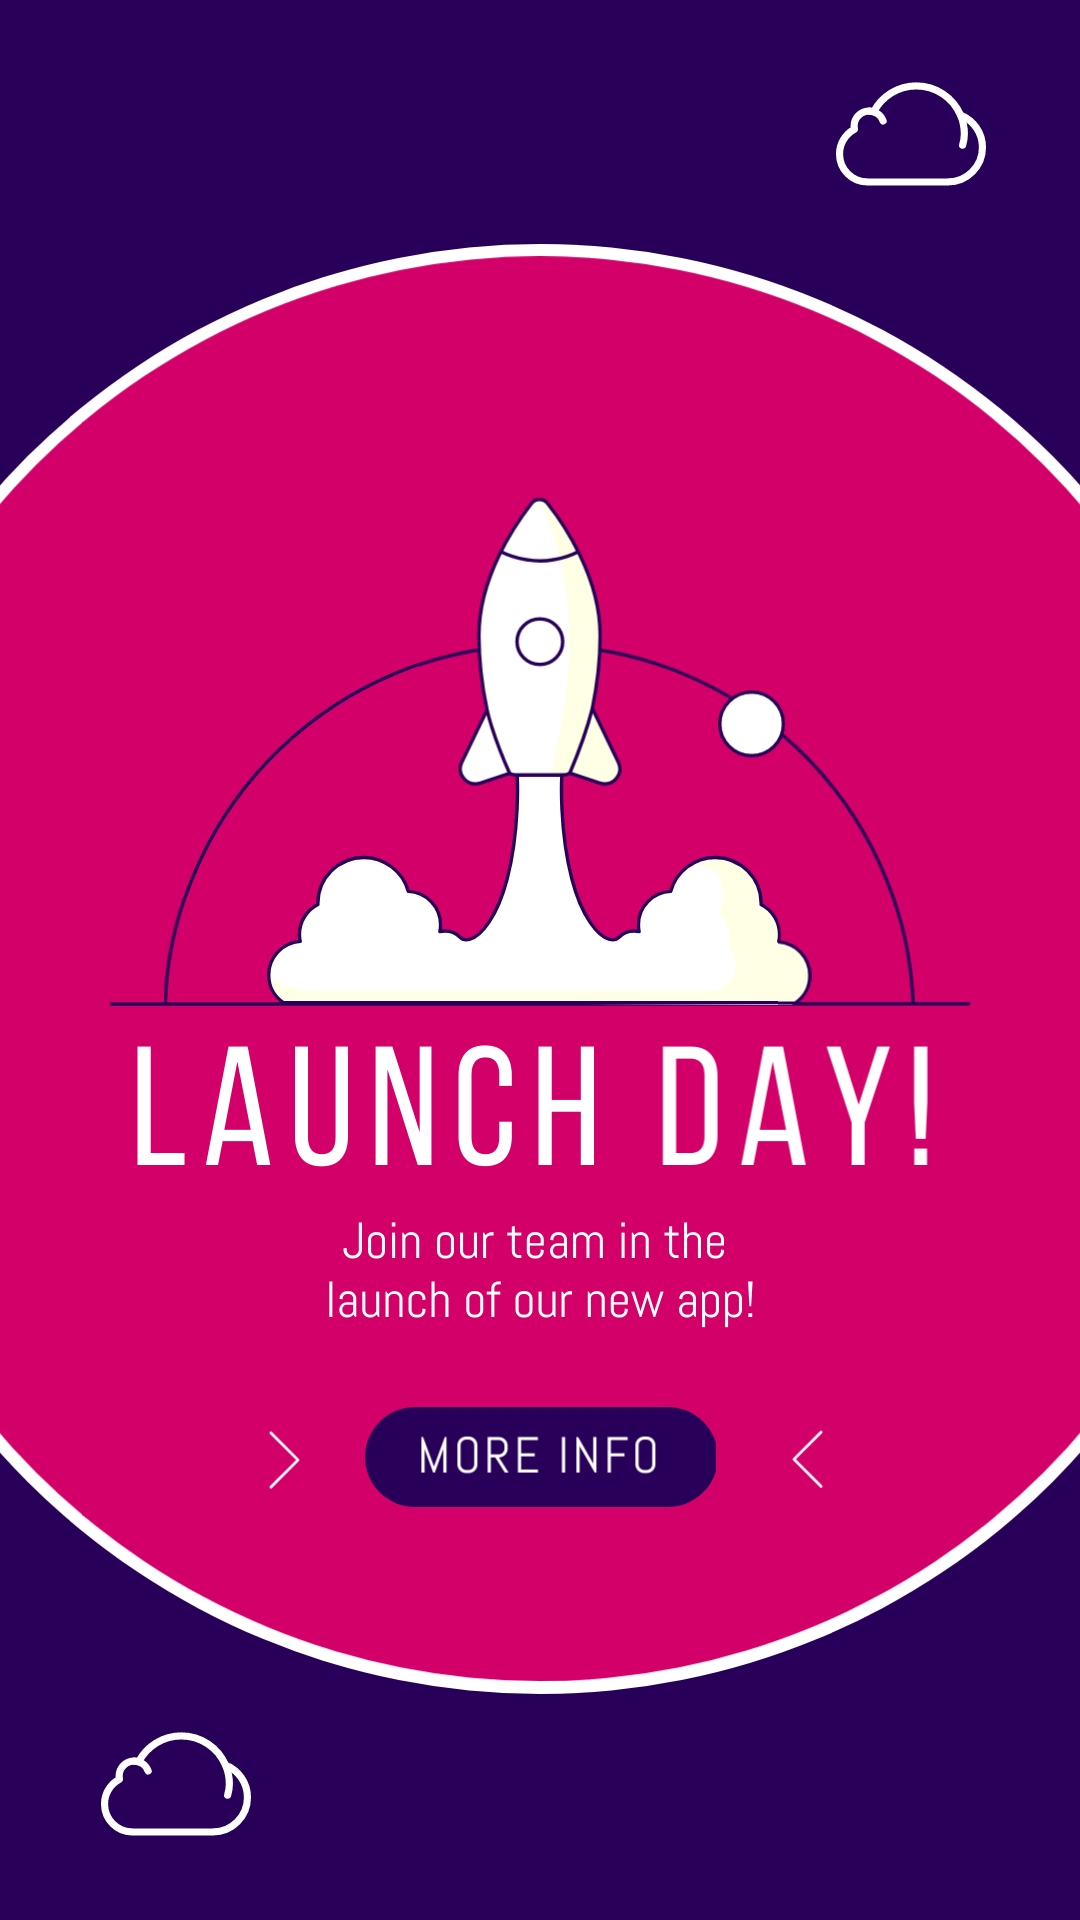 Launch Day Vertical Template